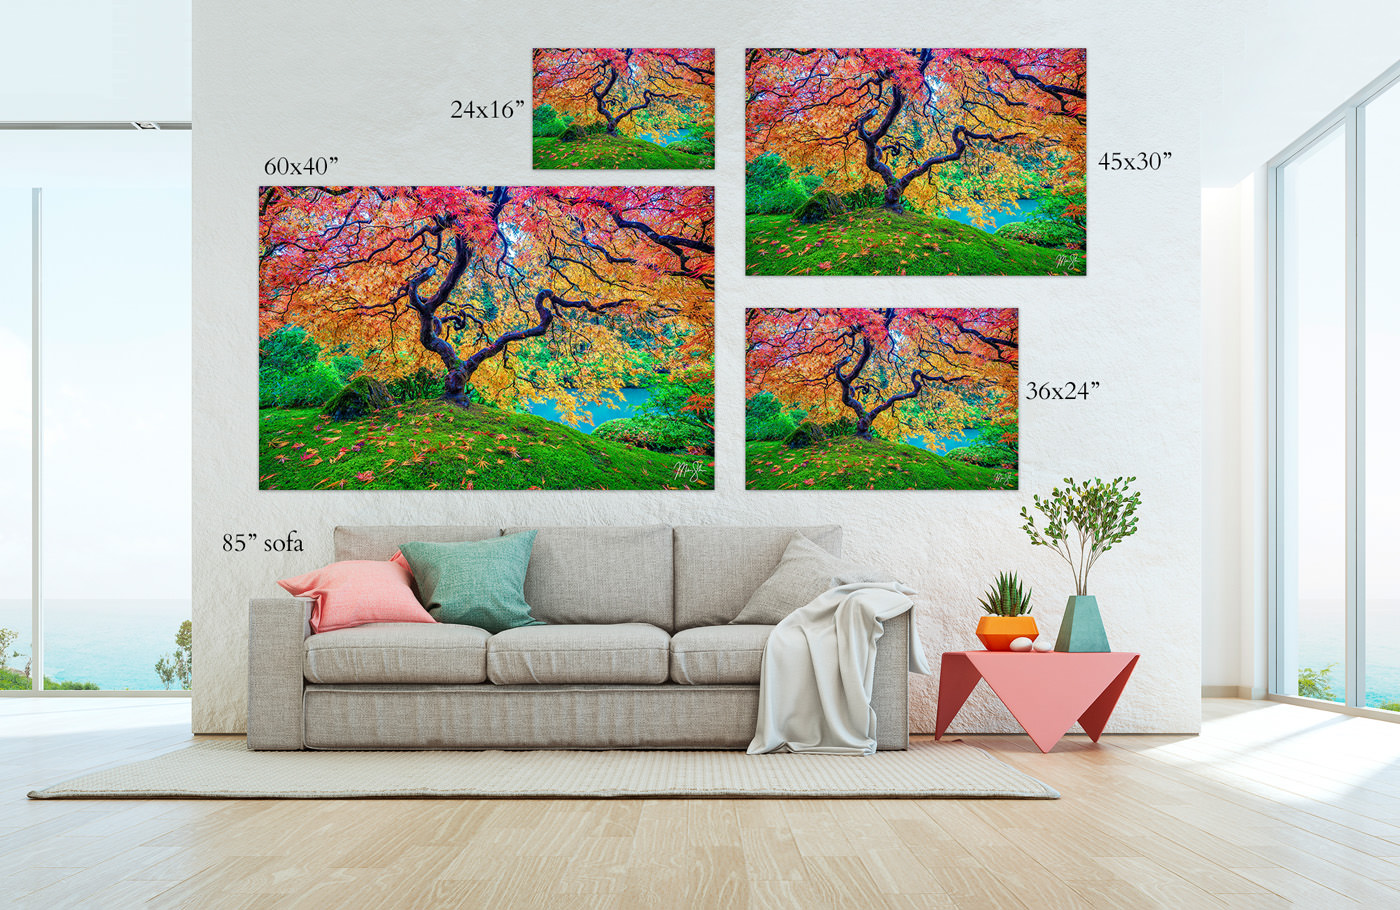 Fine Art Nature Photography Prints Sizing